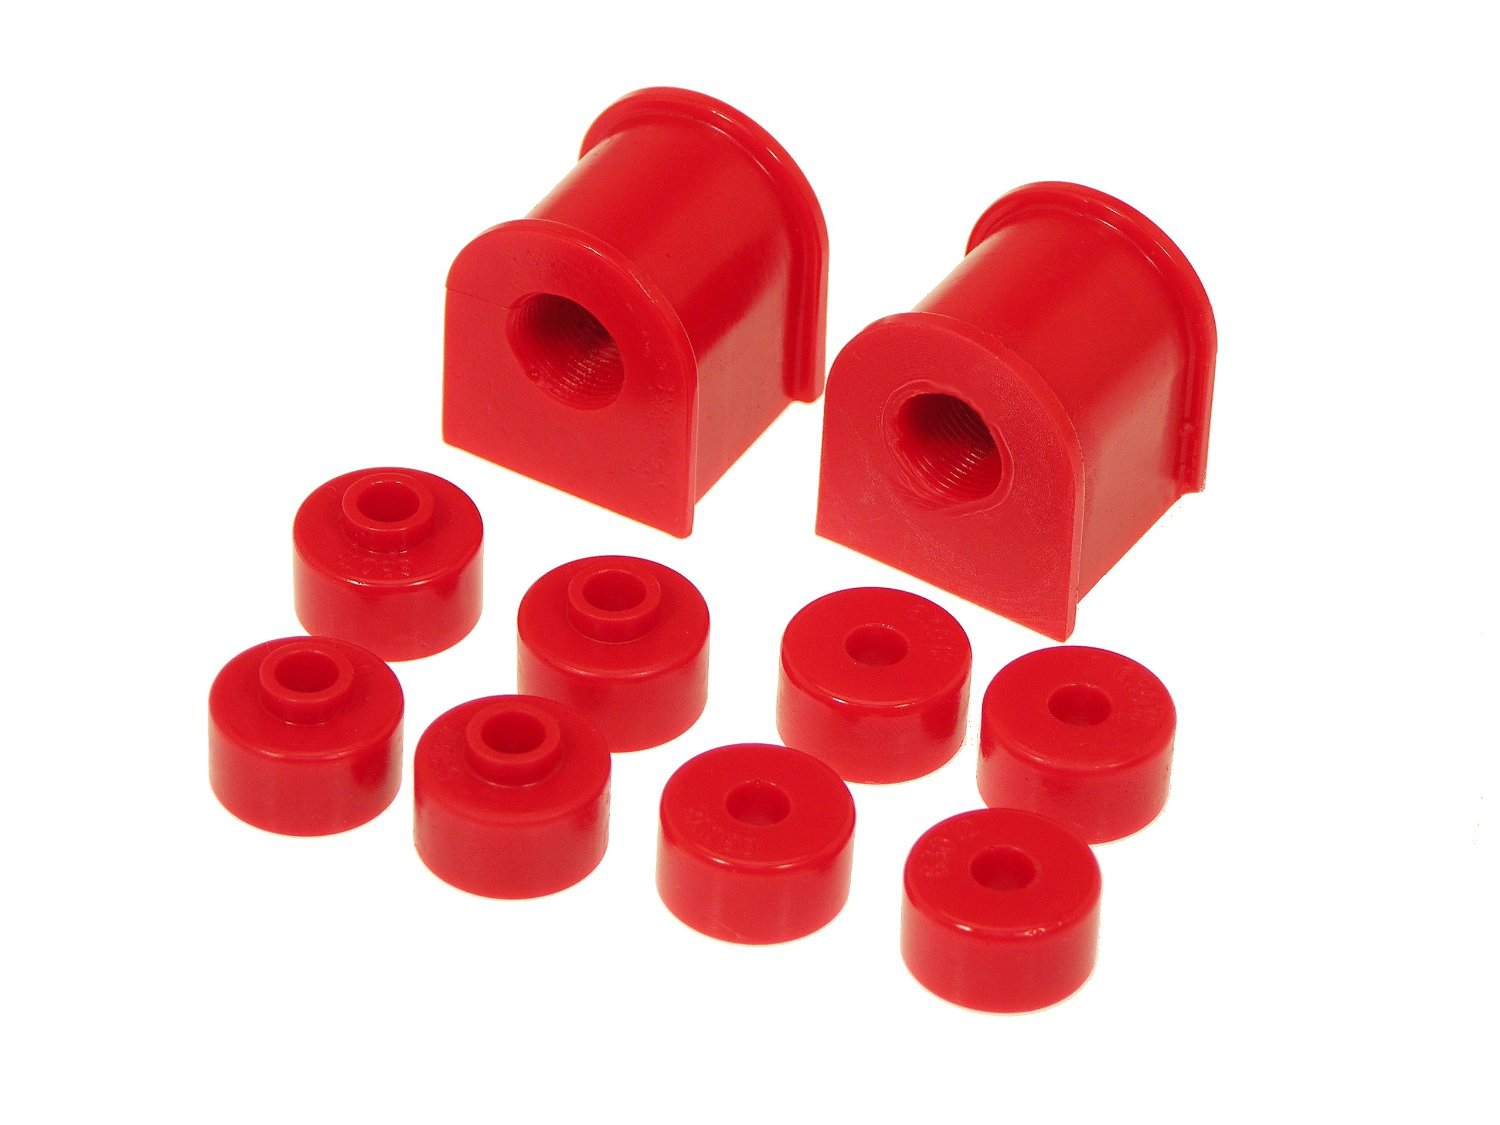 Prothane 14-1121 Rear Sway Bar Bushing Kit, 16mm Red - Nissan 240SX 95-98 S14